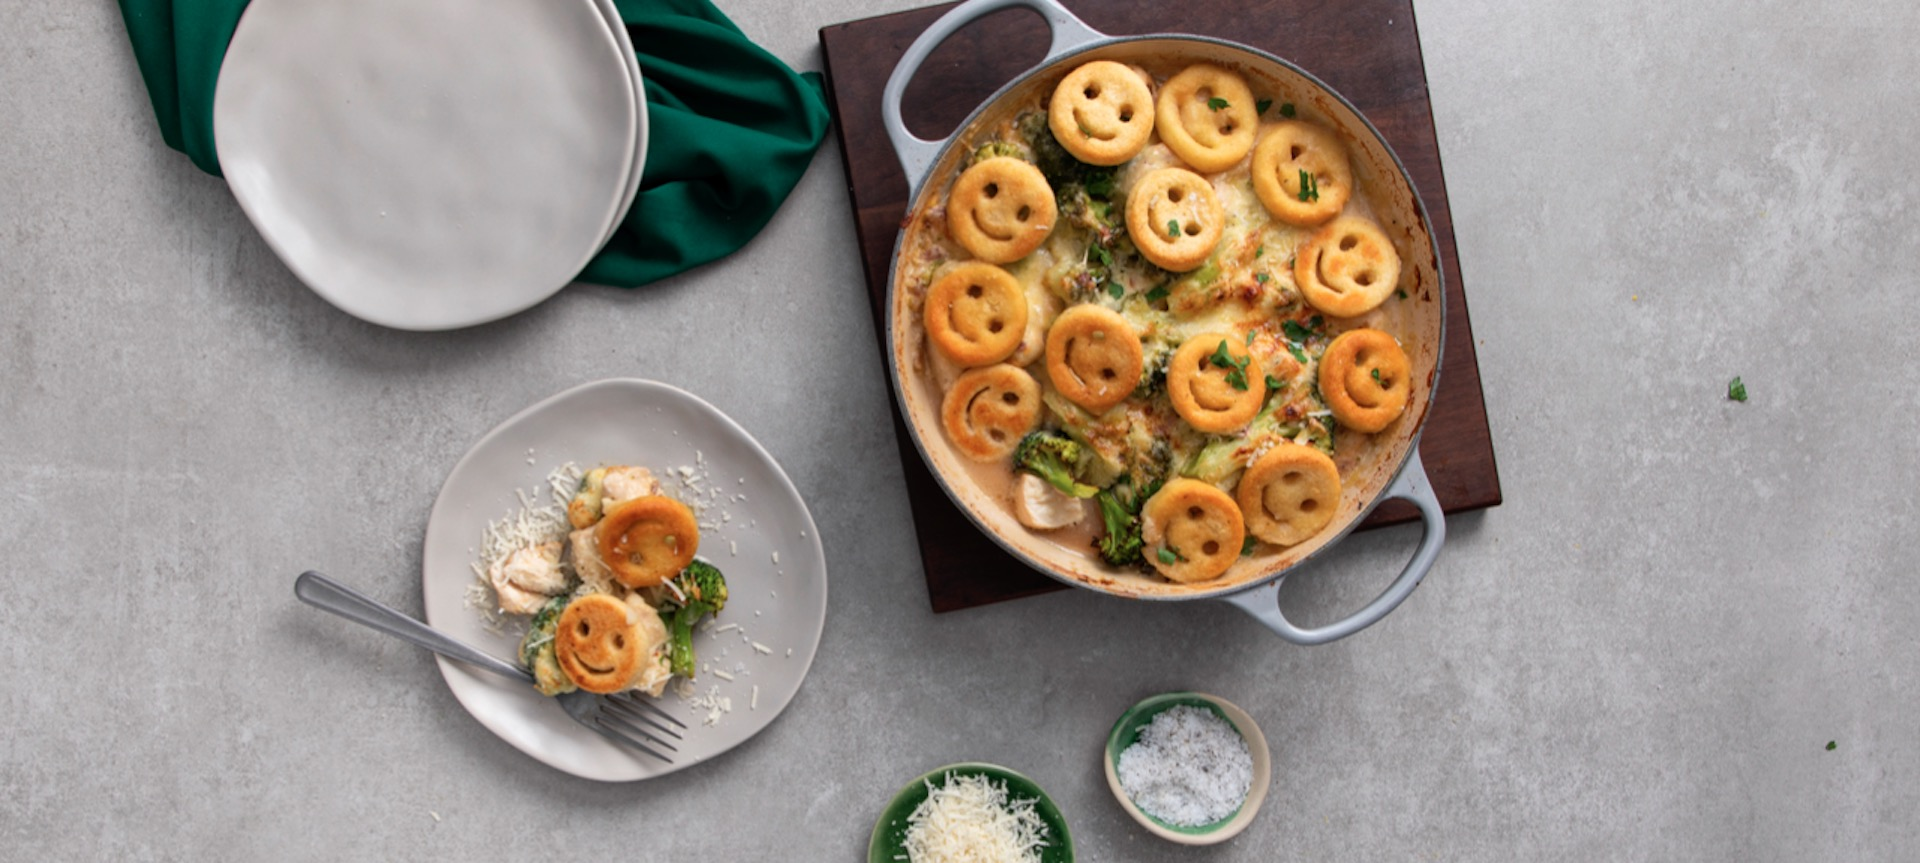 Chicken & Broccoli Bake with Smiles